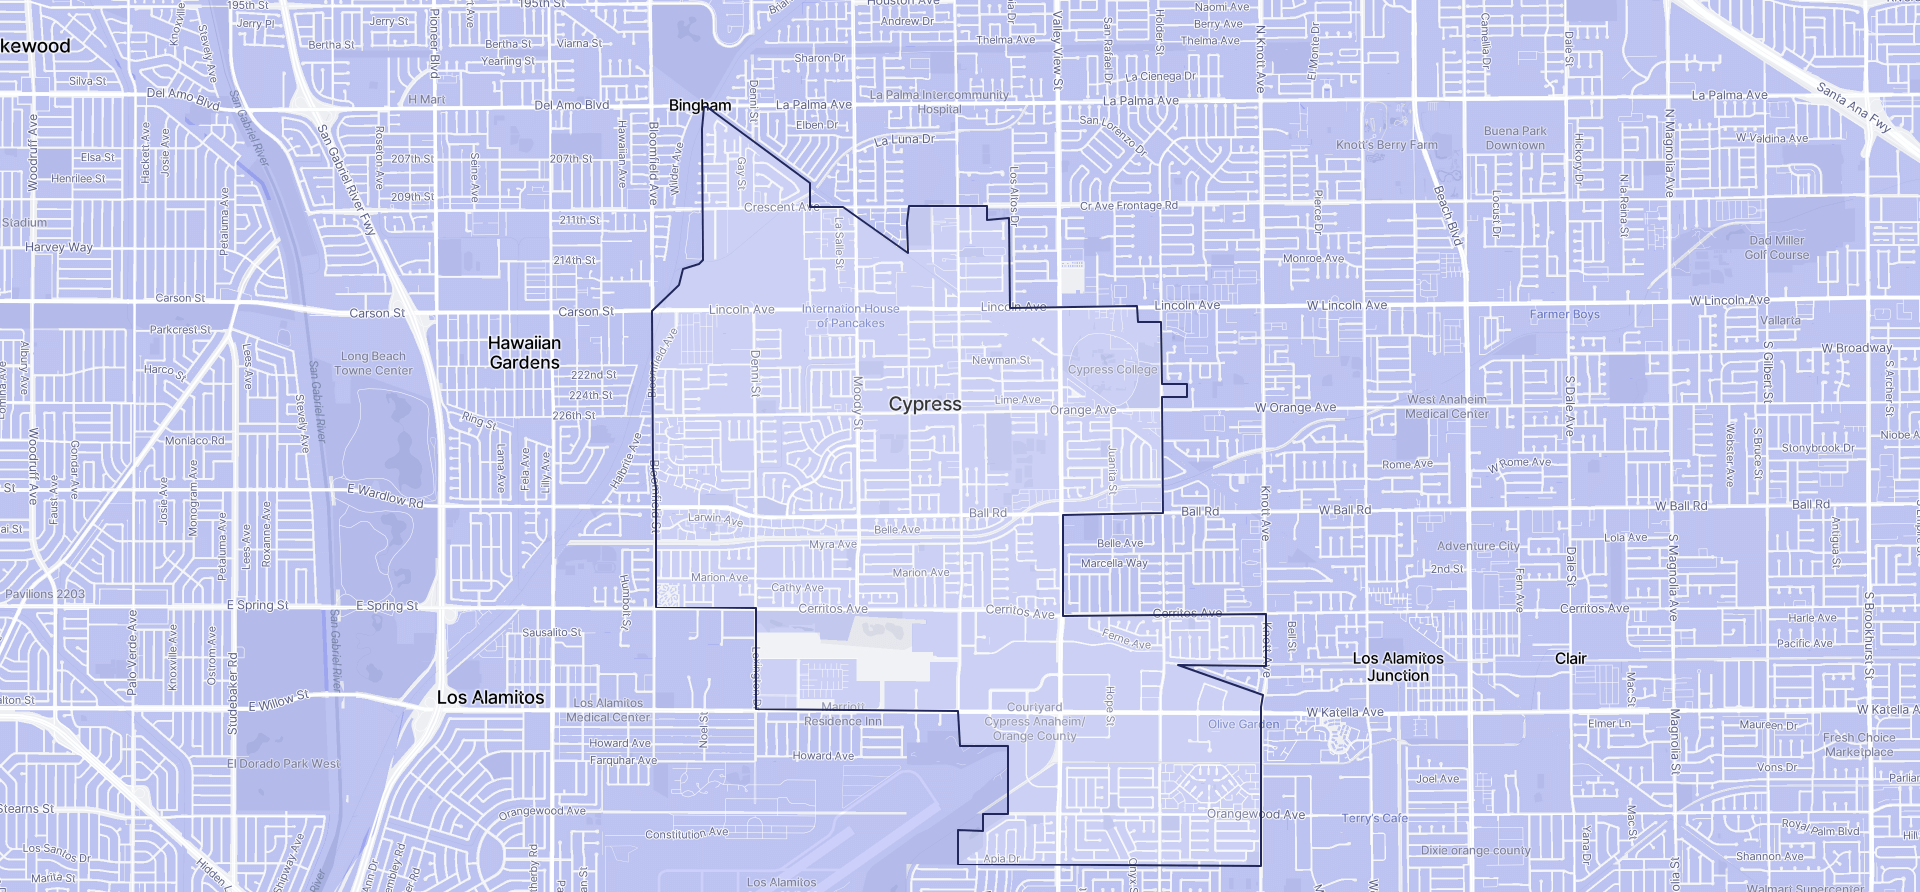 Image of Cypress boundaries on a map.